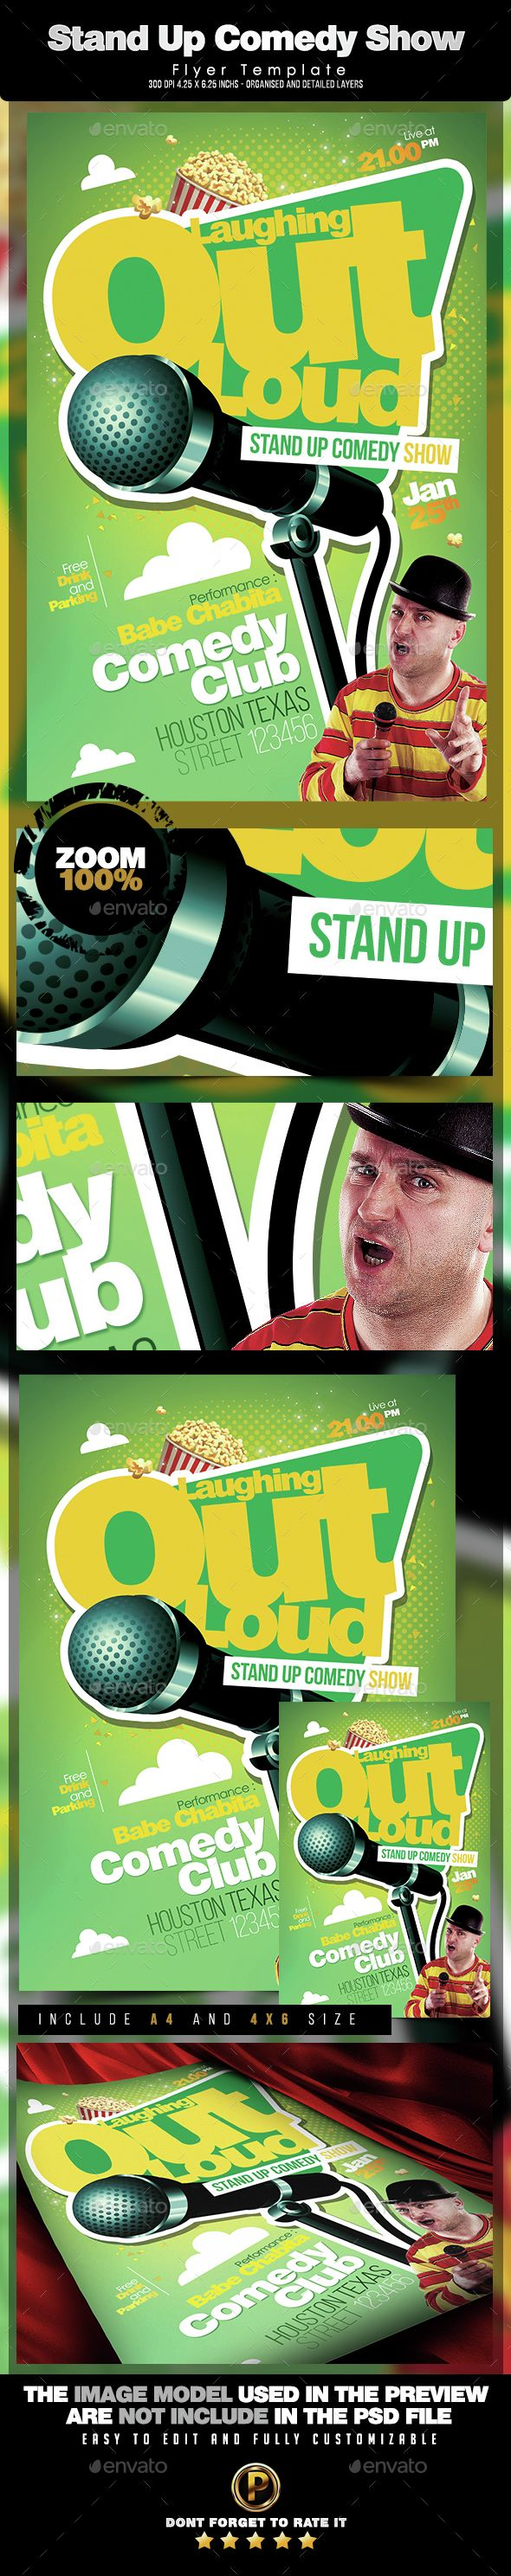 Comedy Show Flyer Template xtremeflyerscomedyshow – Comedy Show Flyer Template